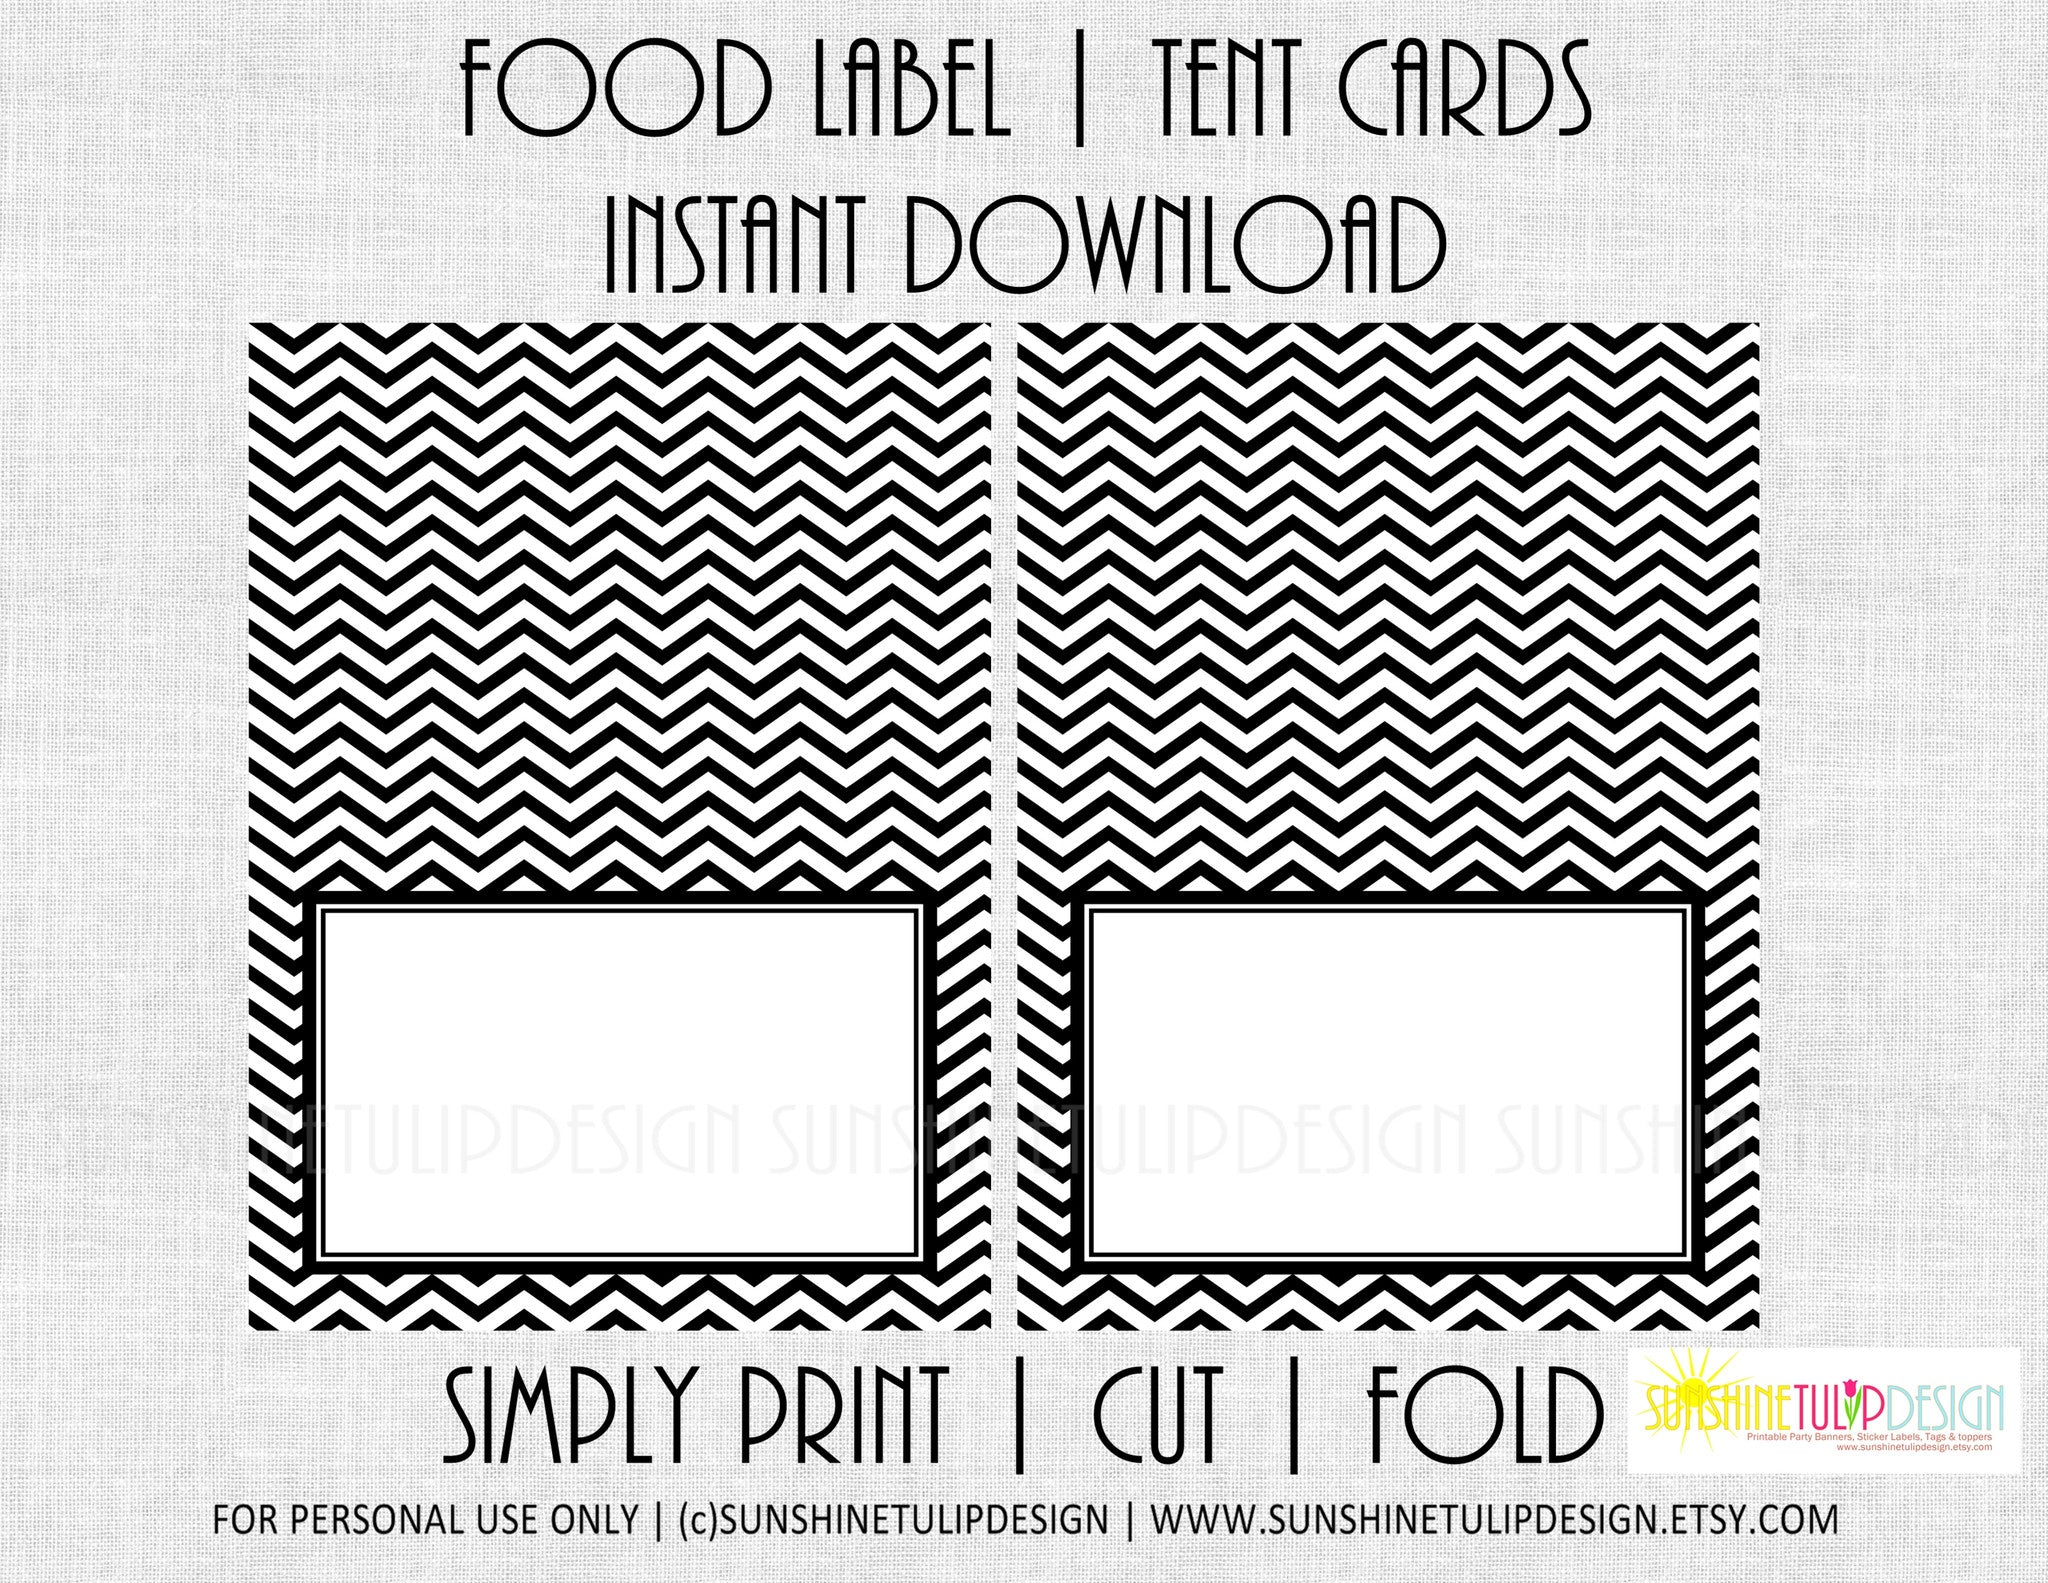 photograph regarding Printable Tent Cards identify Printable Foodstuff Label Tent Playing cards Black White Chevron All Celebration playing cards through SUNSHINETULIPDESIGN